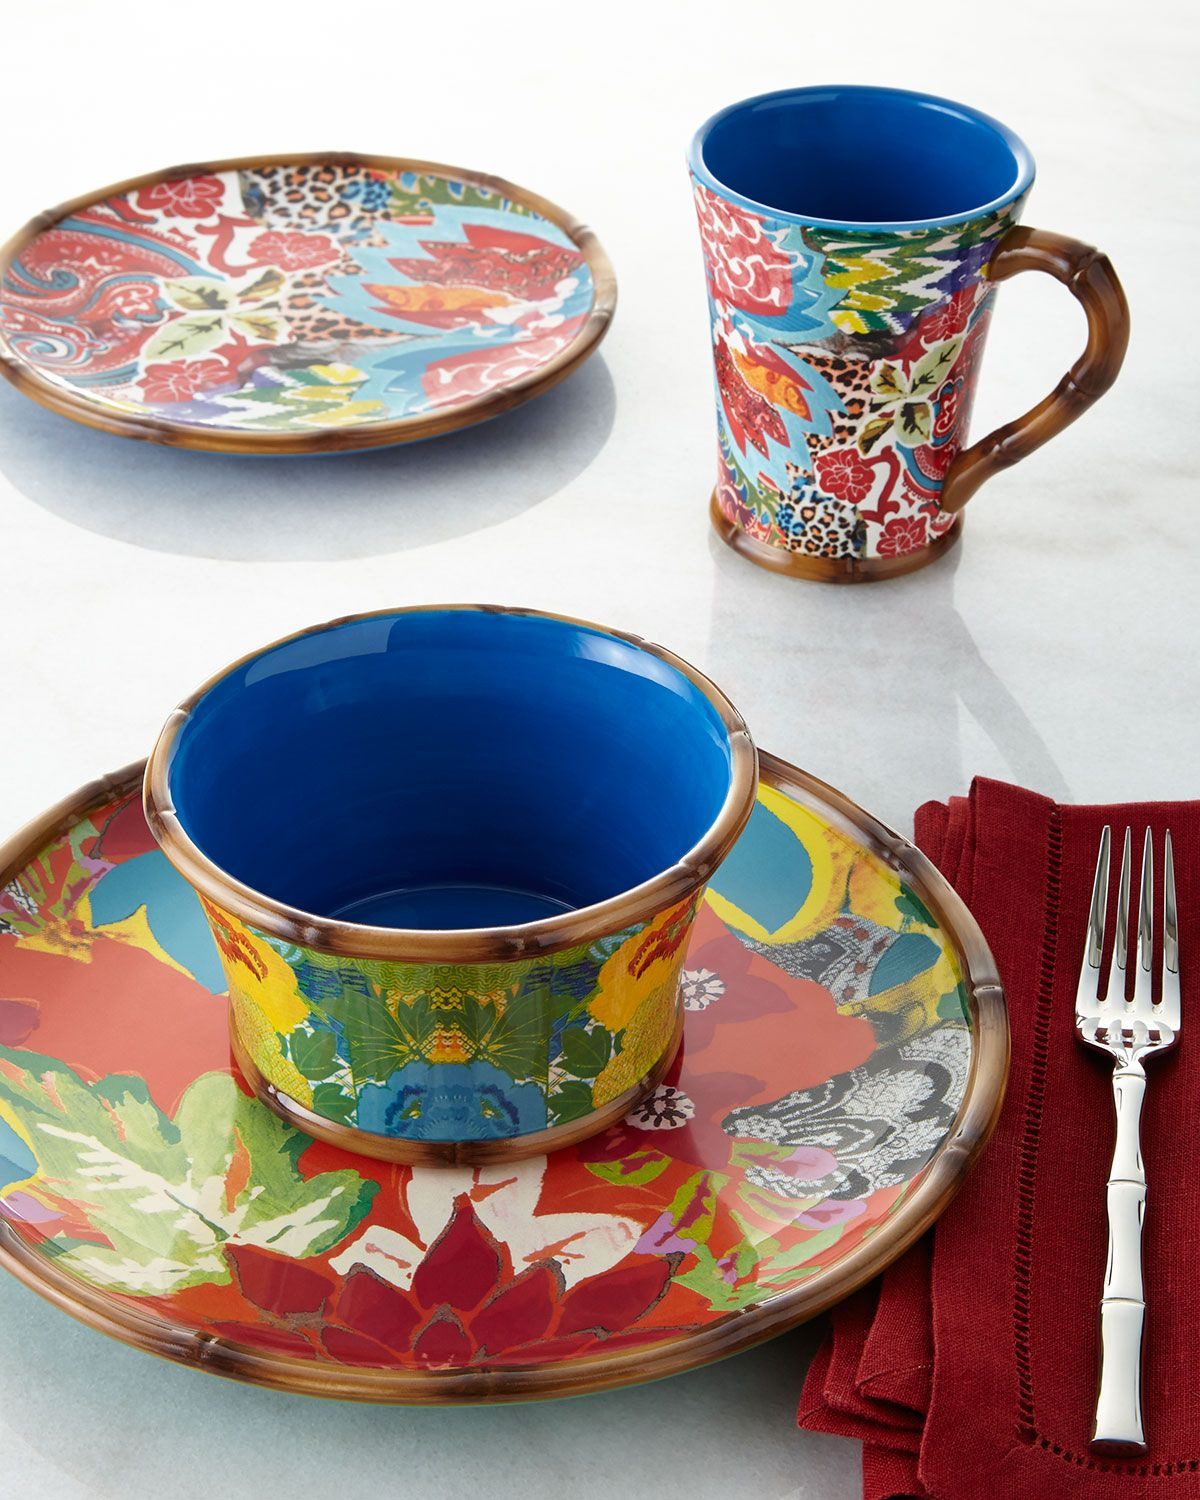 16-Piece Hand-Painted Dinnerware Service Multi Colors - Tracy Porter for Poetic & 16-Piece Hand-Painted Dinnerware Service Multi Colors - Tracy ...